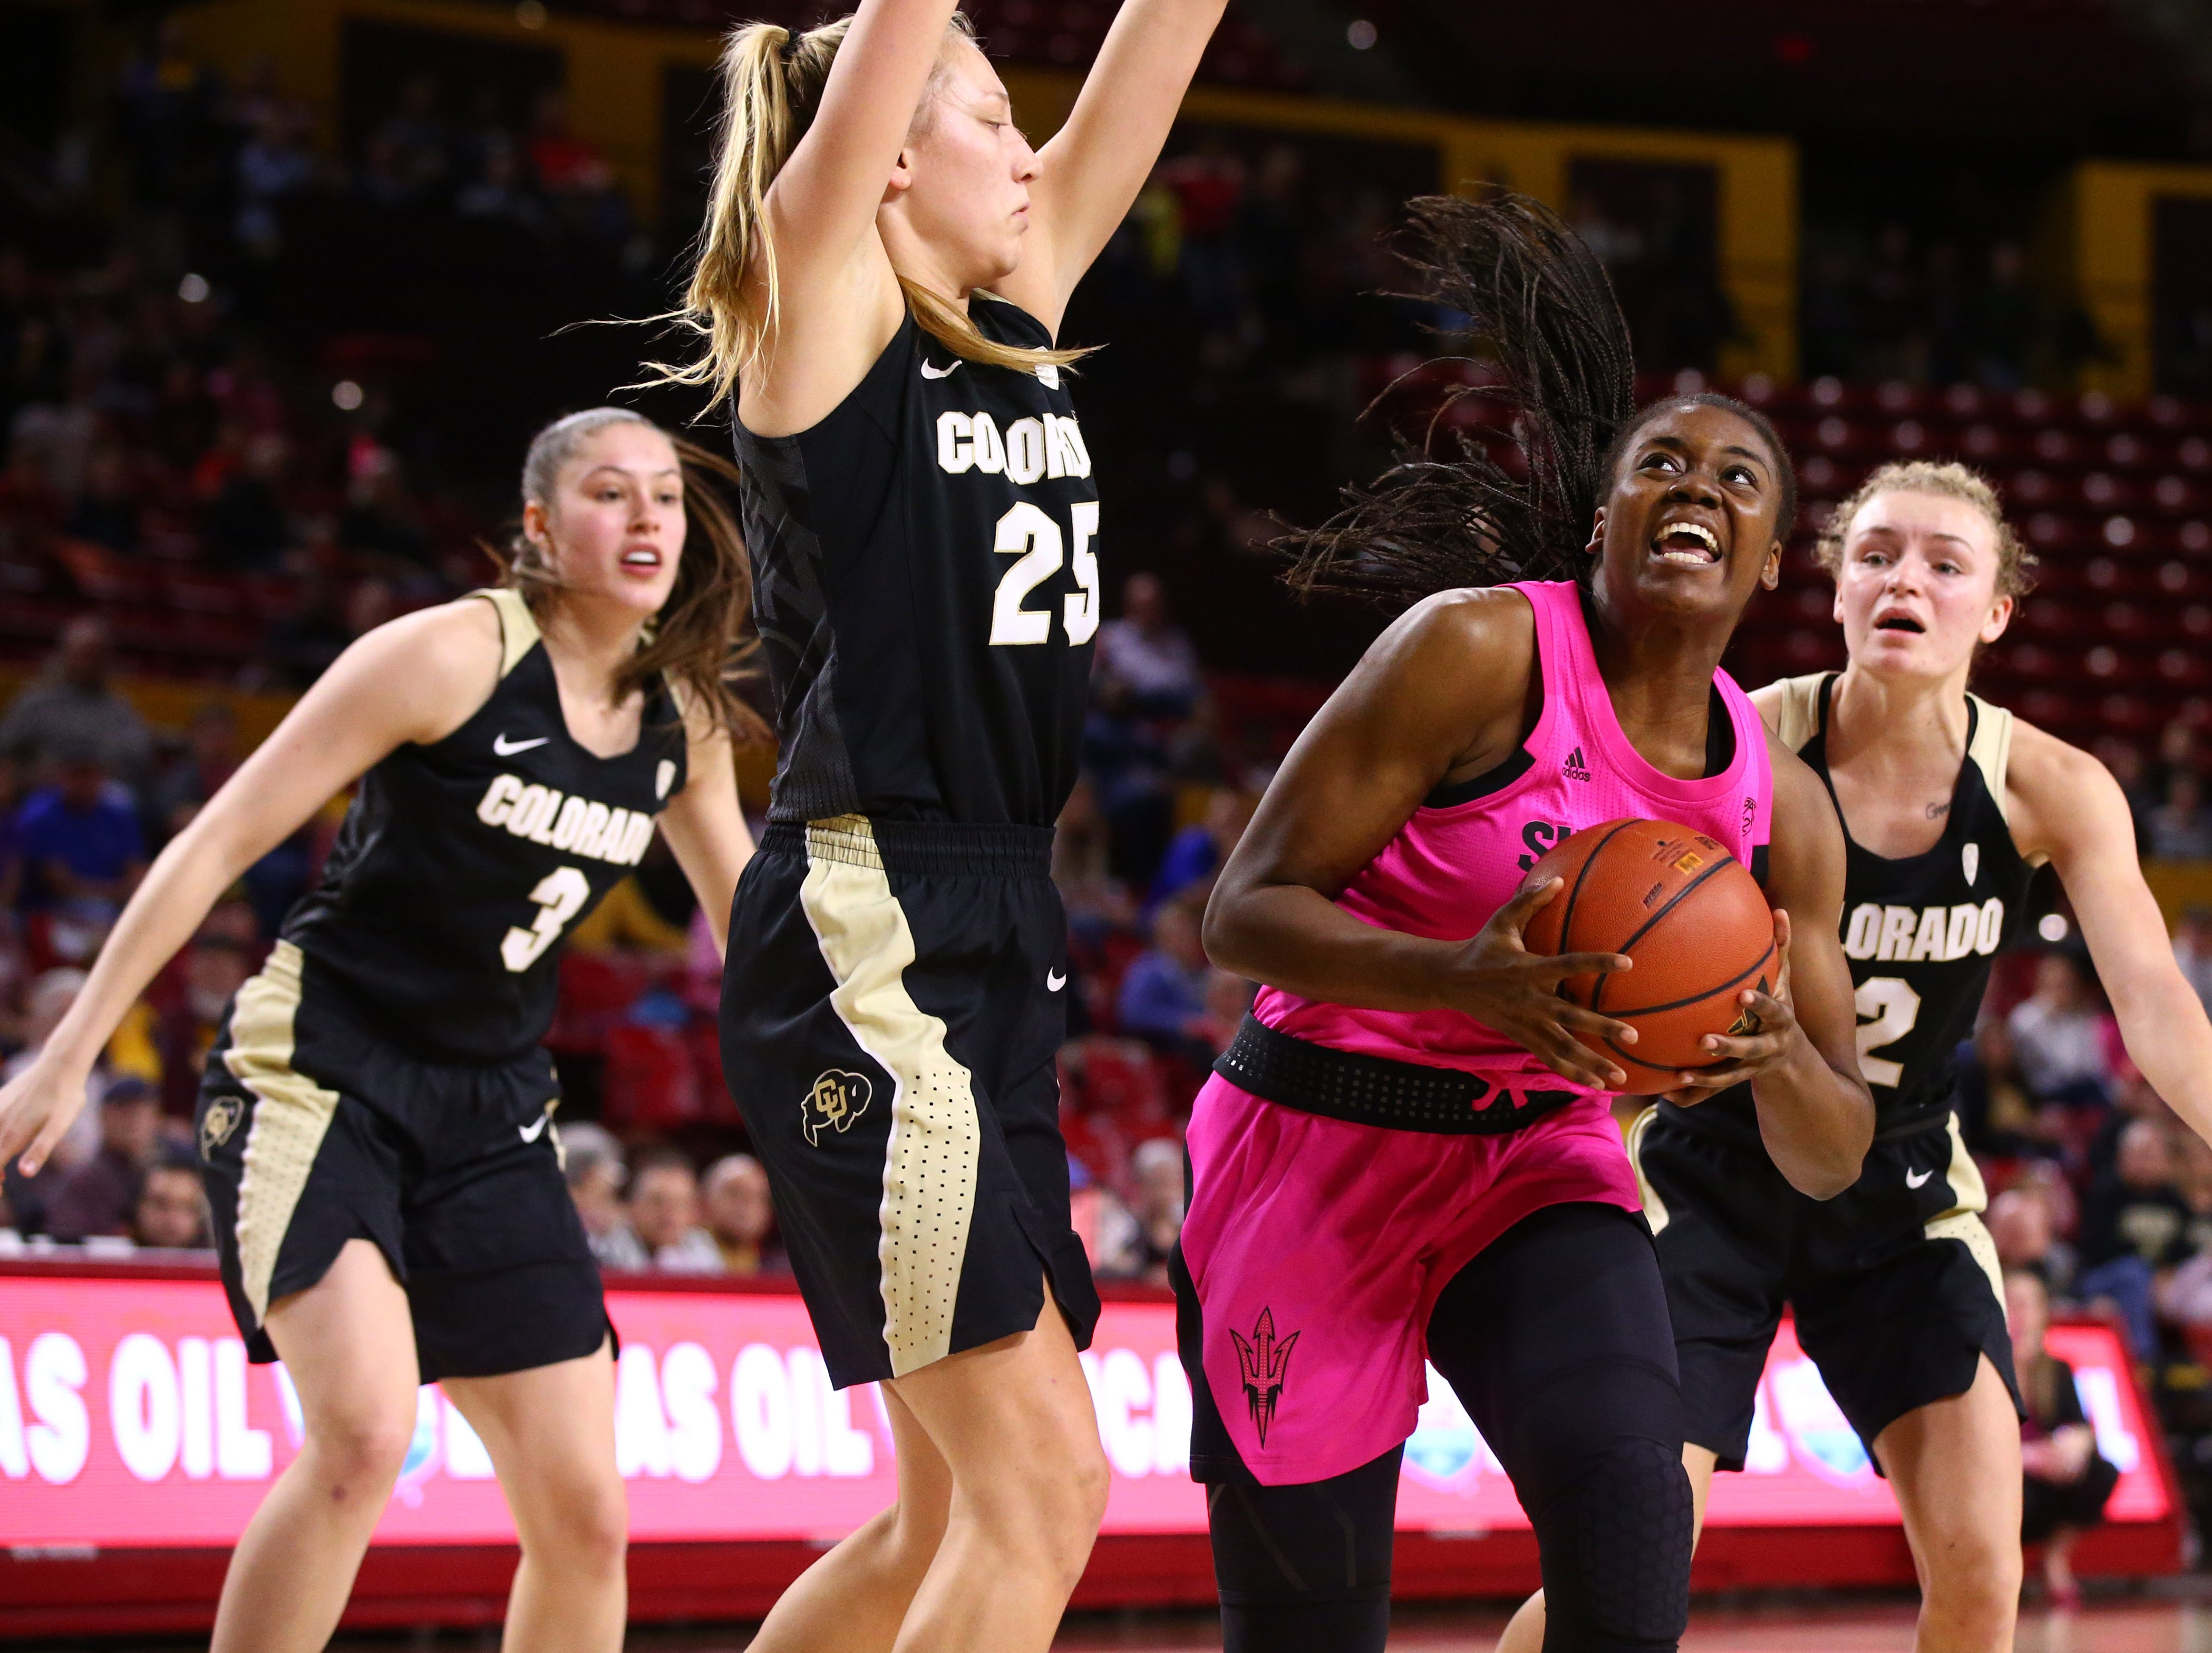 Arizona State Sun Devils guard Iris Mbulito (23) looks to the basket against the Colorado Buffaloes in the second half on Feb. 15 at Wells Fargo Arena in Tempe, Ariz.